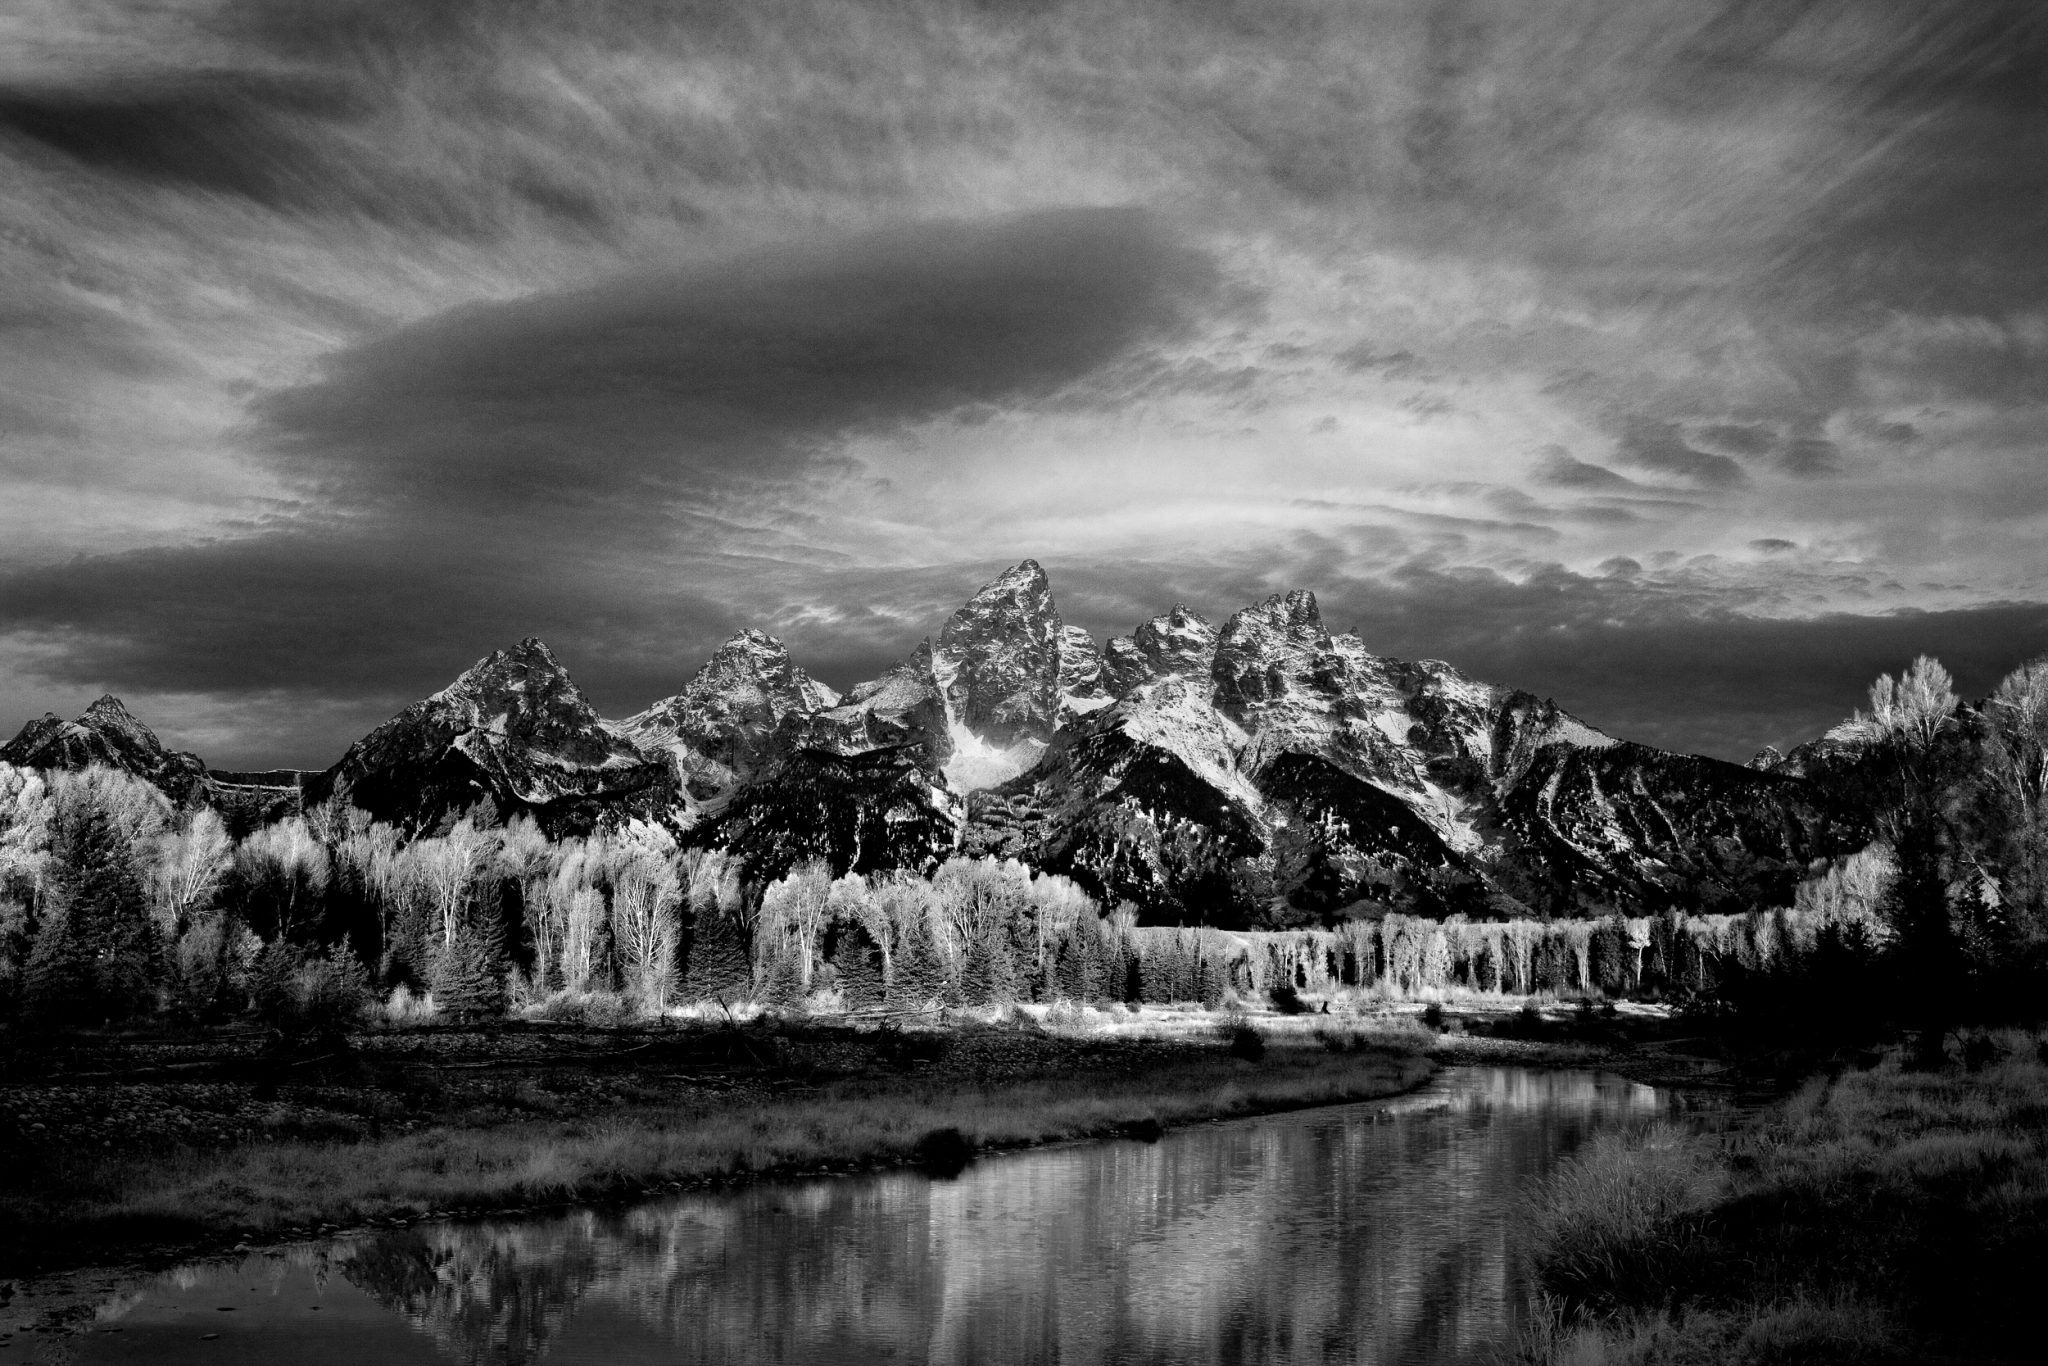 Schwabacher Sunrise - Storm clouds gather at dawn as seen from the Snake River Teton National Park - Wyoming